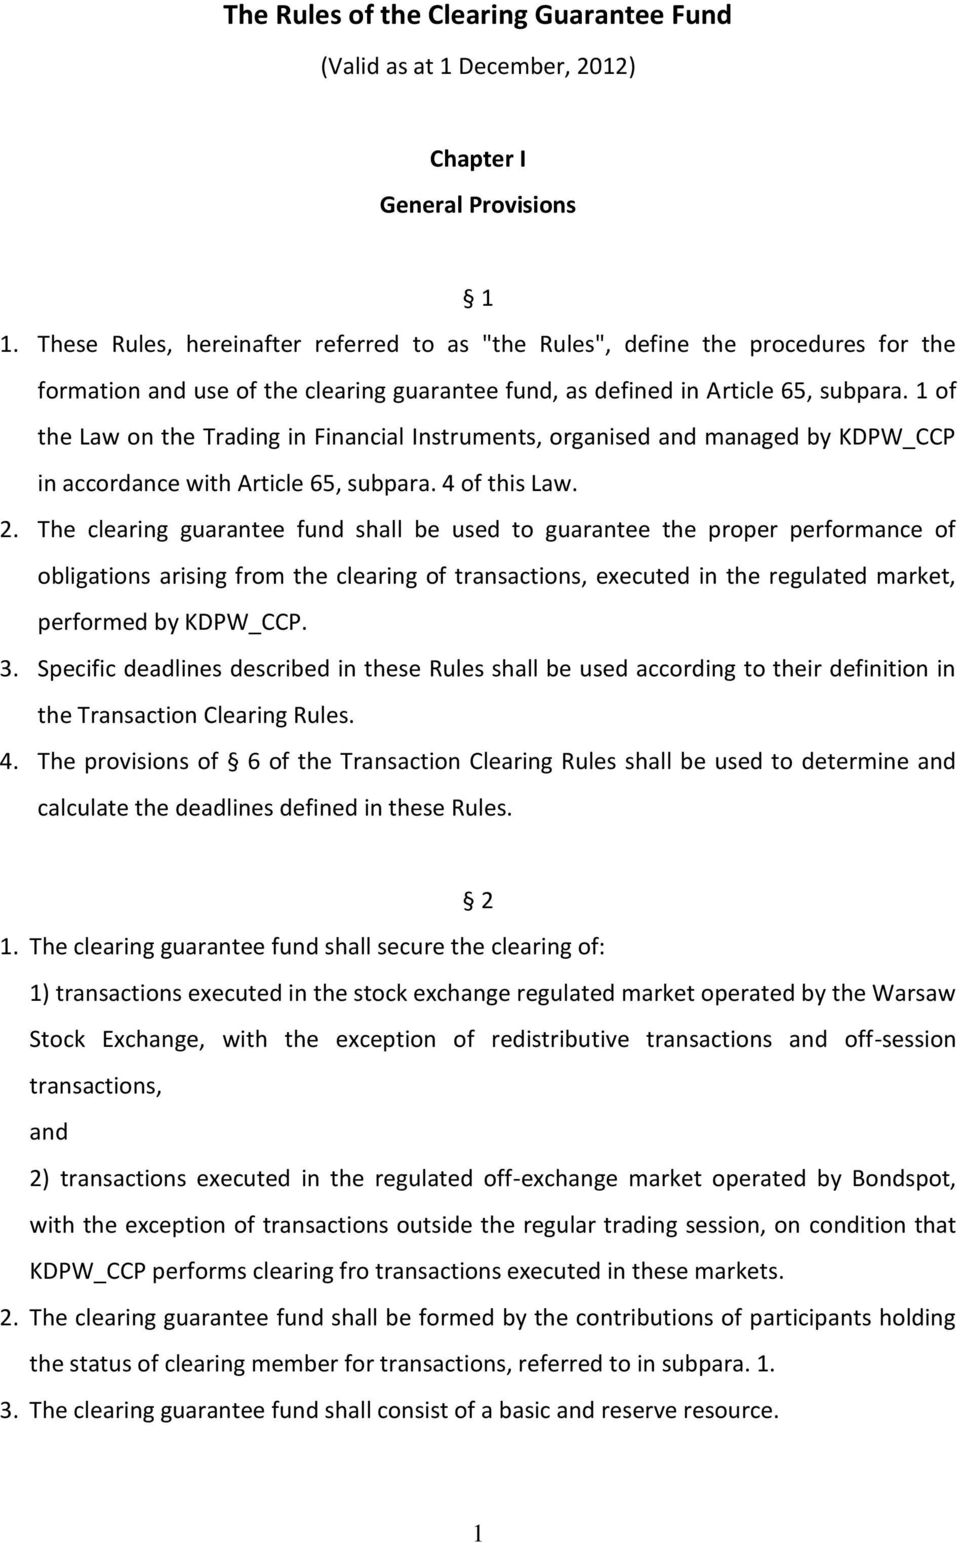 1 of the Law on the Trading in Financial Instruments, organised and managed by KDPW_CCP in accordance with Article 65, subpara. 4 of this Law. 2.